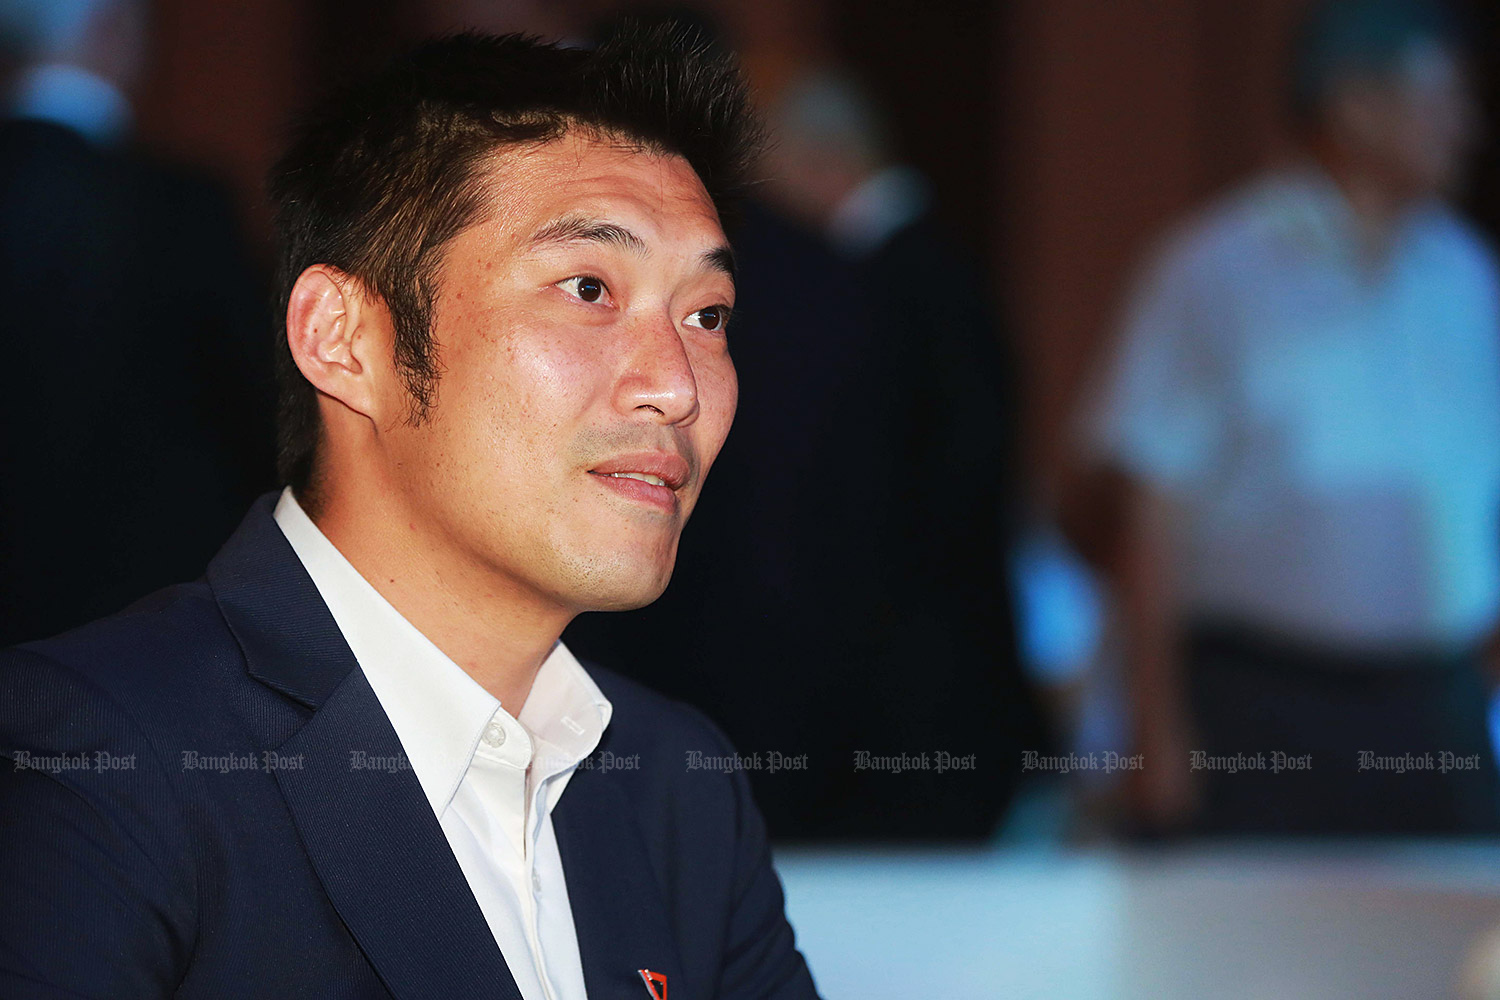 Future Forward Party leader Thanathorn Juangroongruangkit. (Bangkok Post file photo)